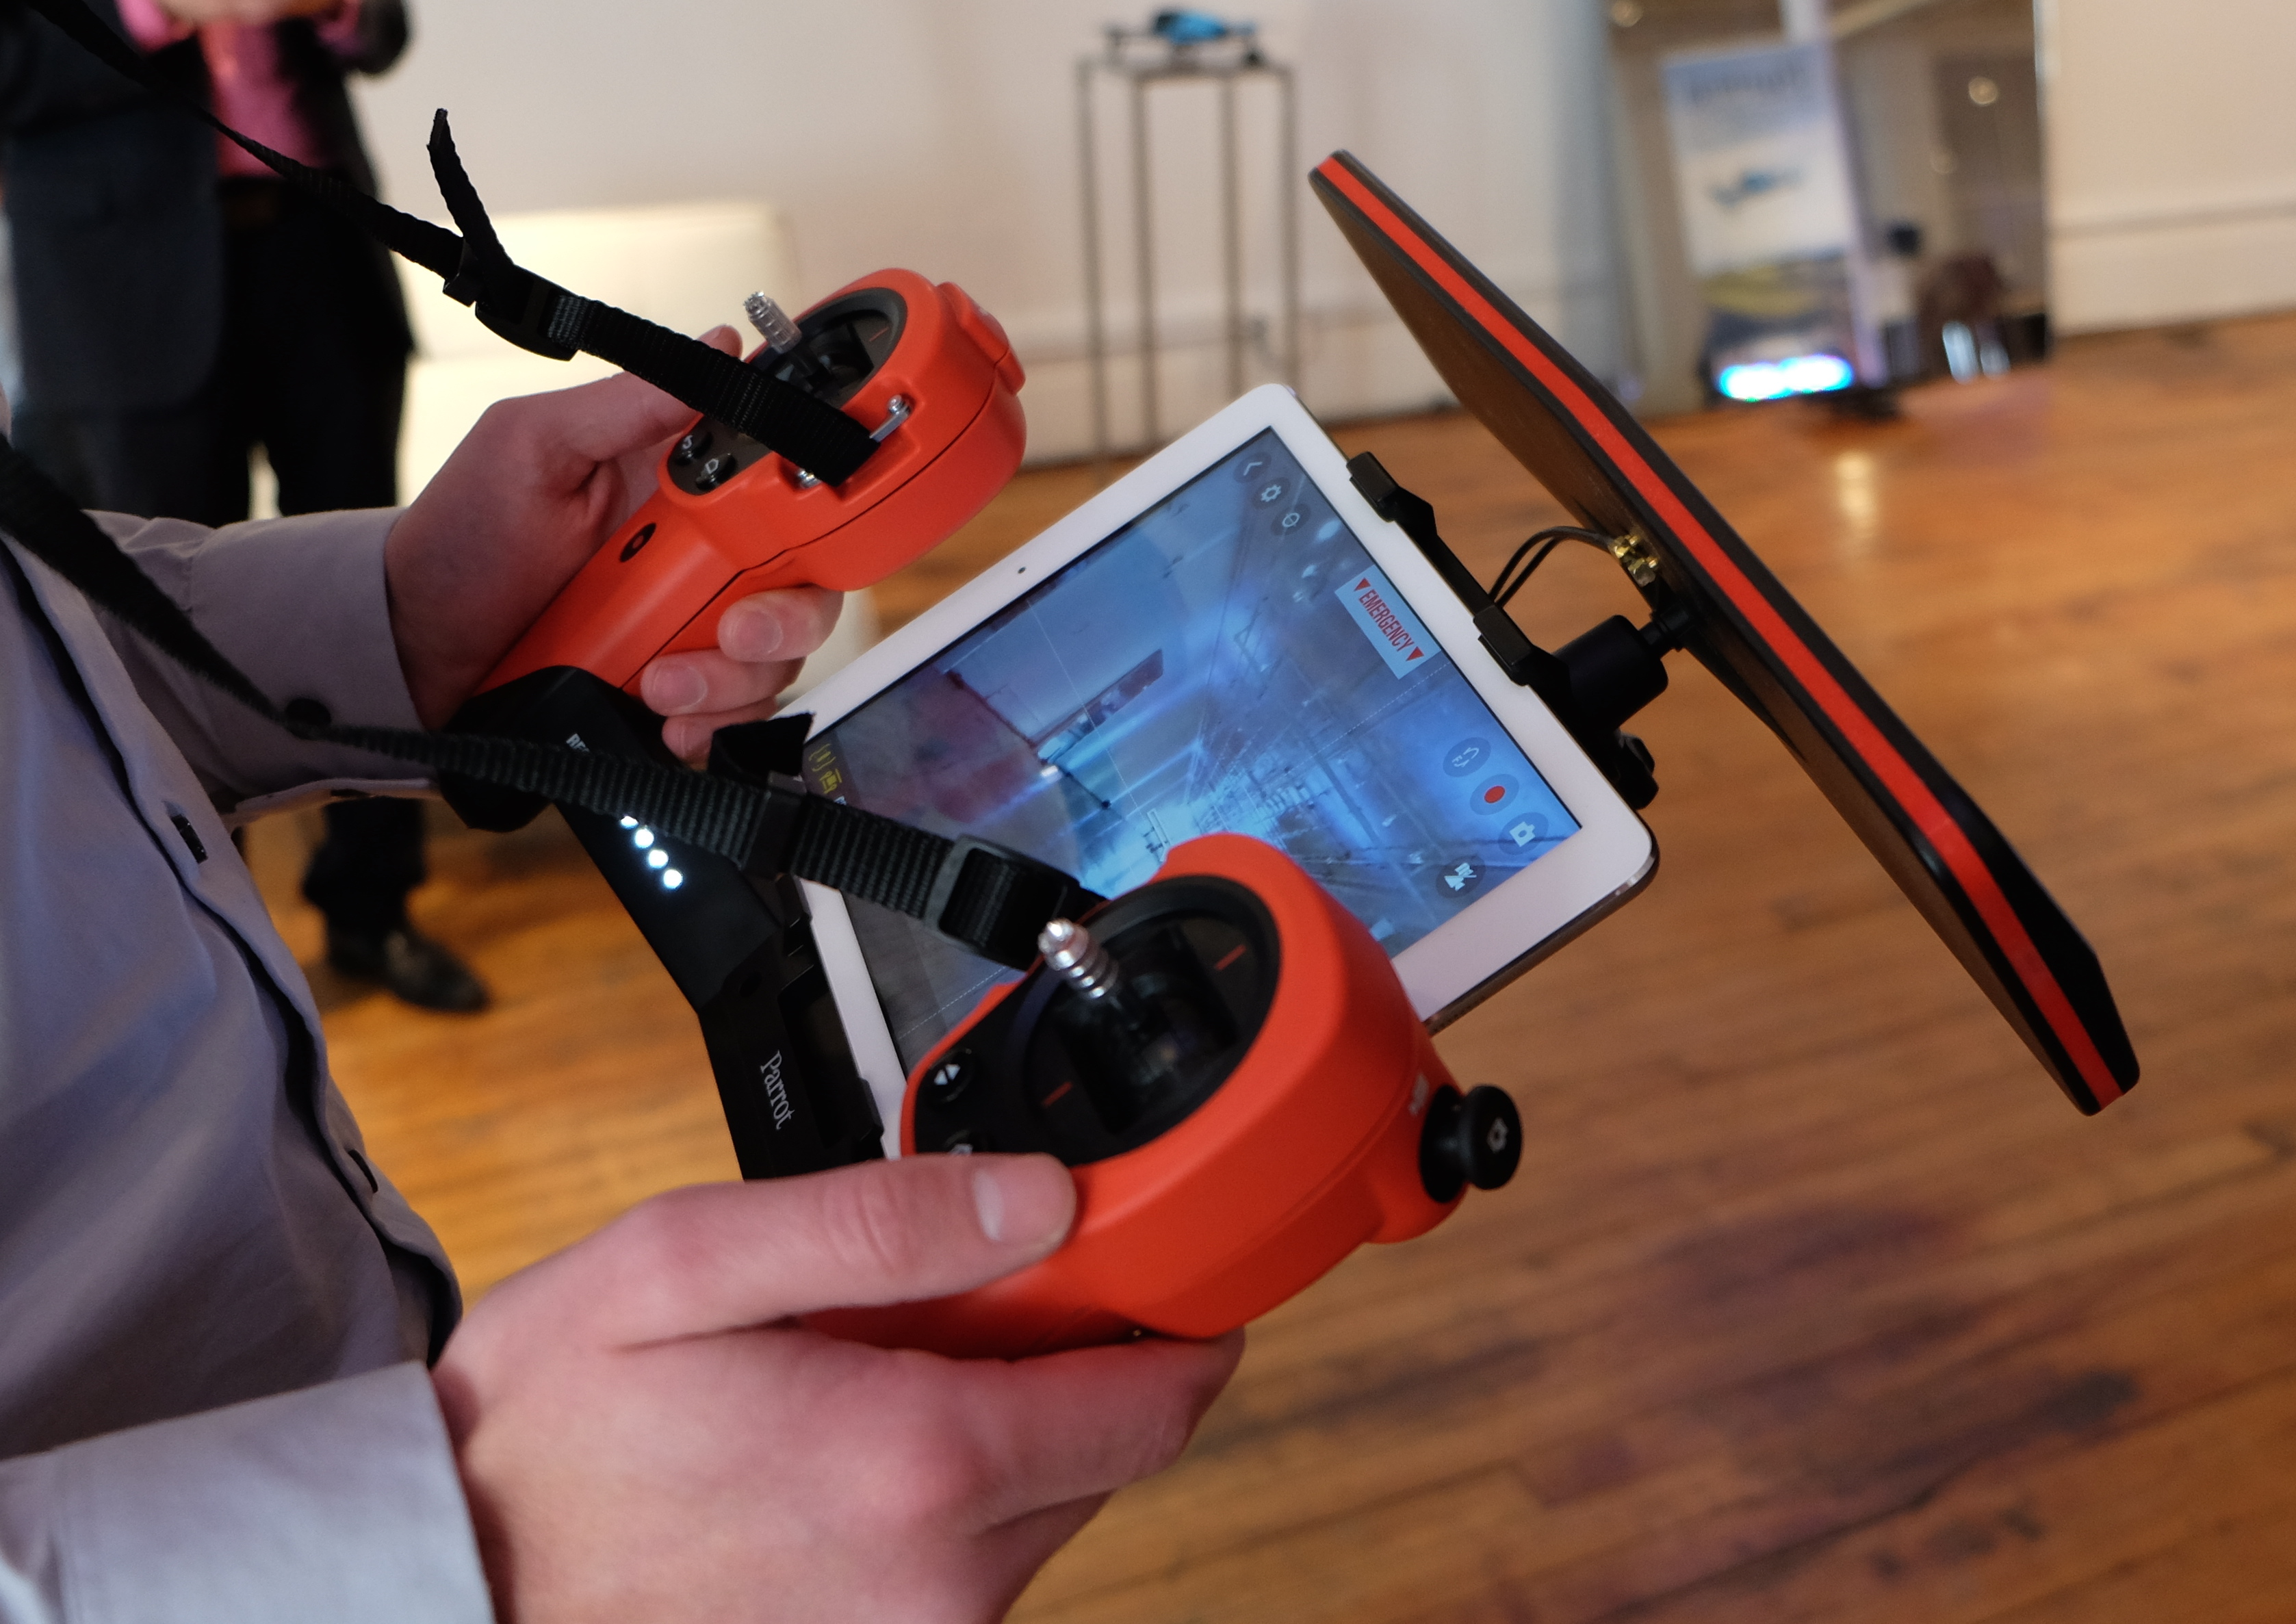 Hands-On with Parrot's Bebop Drone